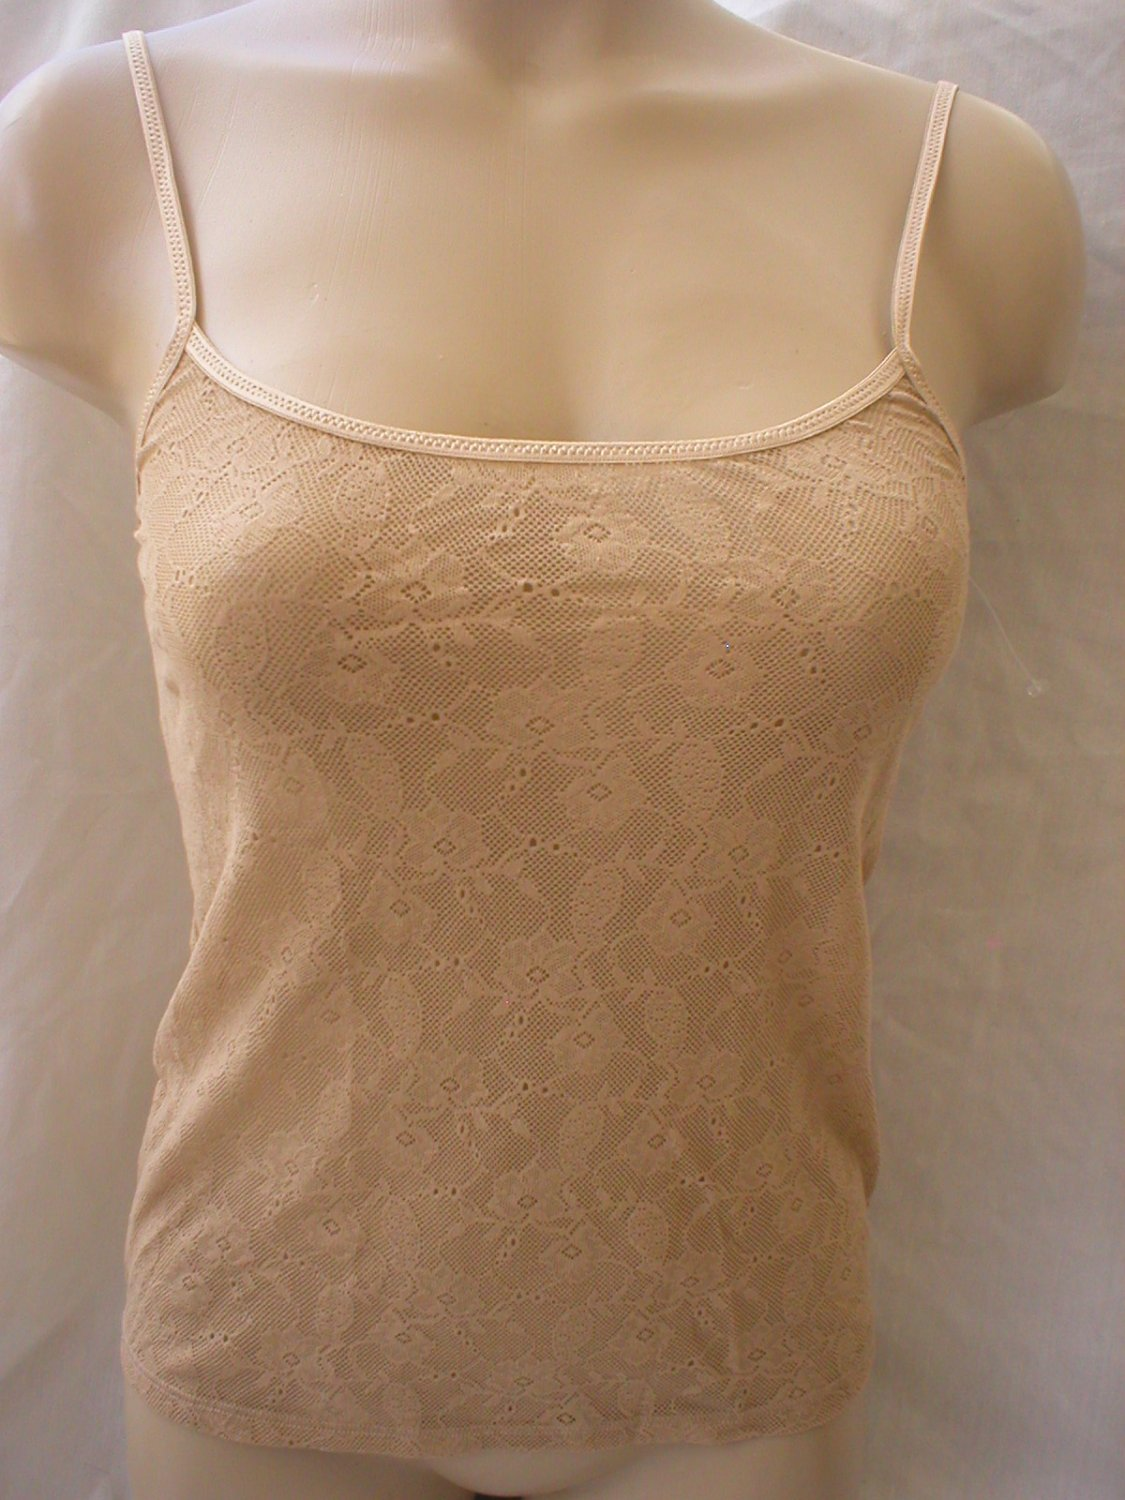 Calvin Klein Nude Sheer Lace Perfectly Fit Camisole Top F2858 S NWT